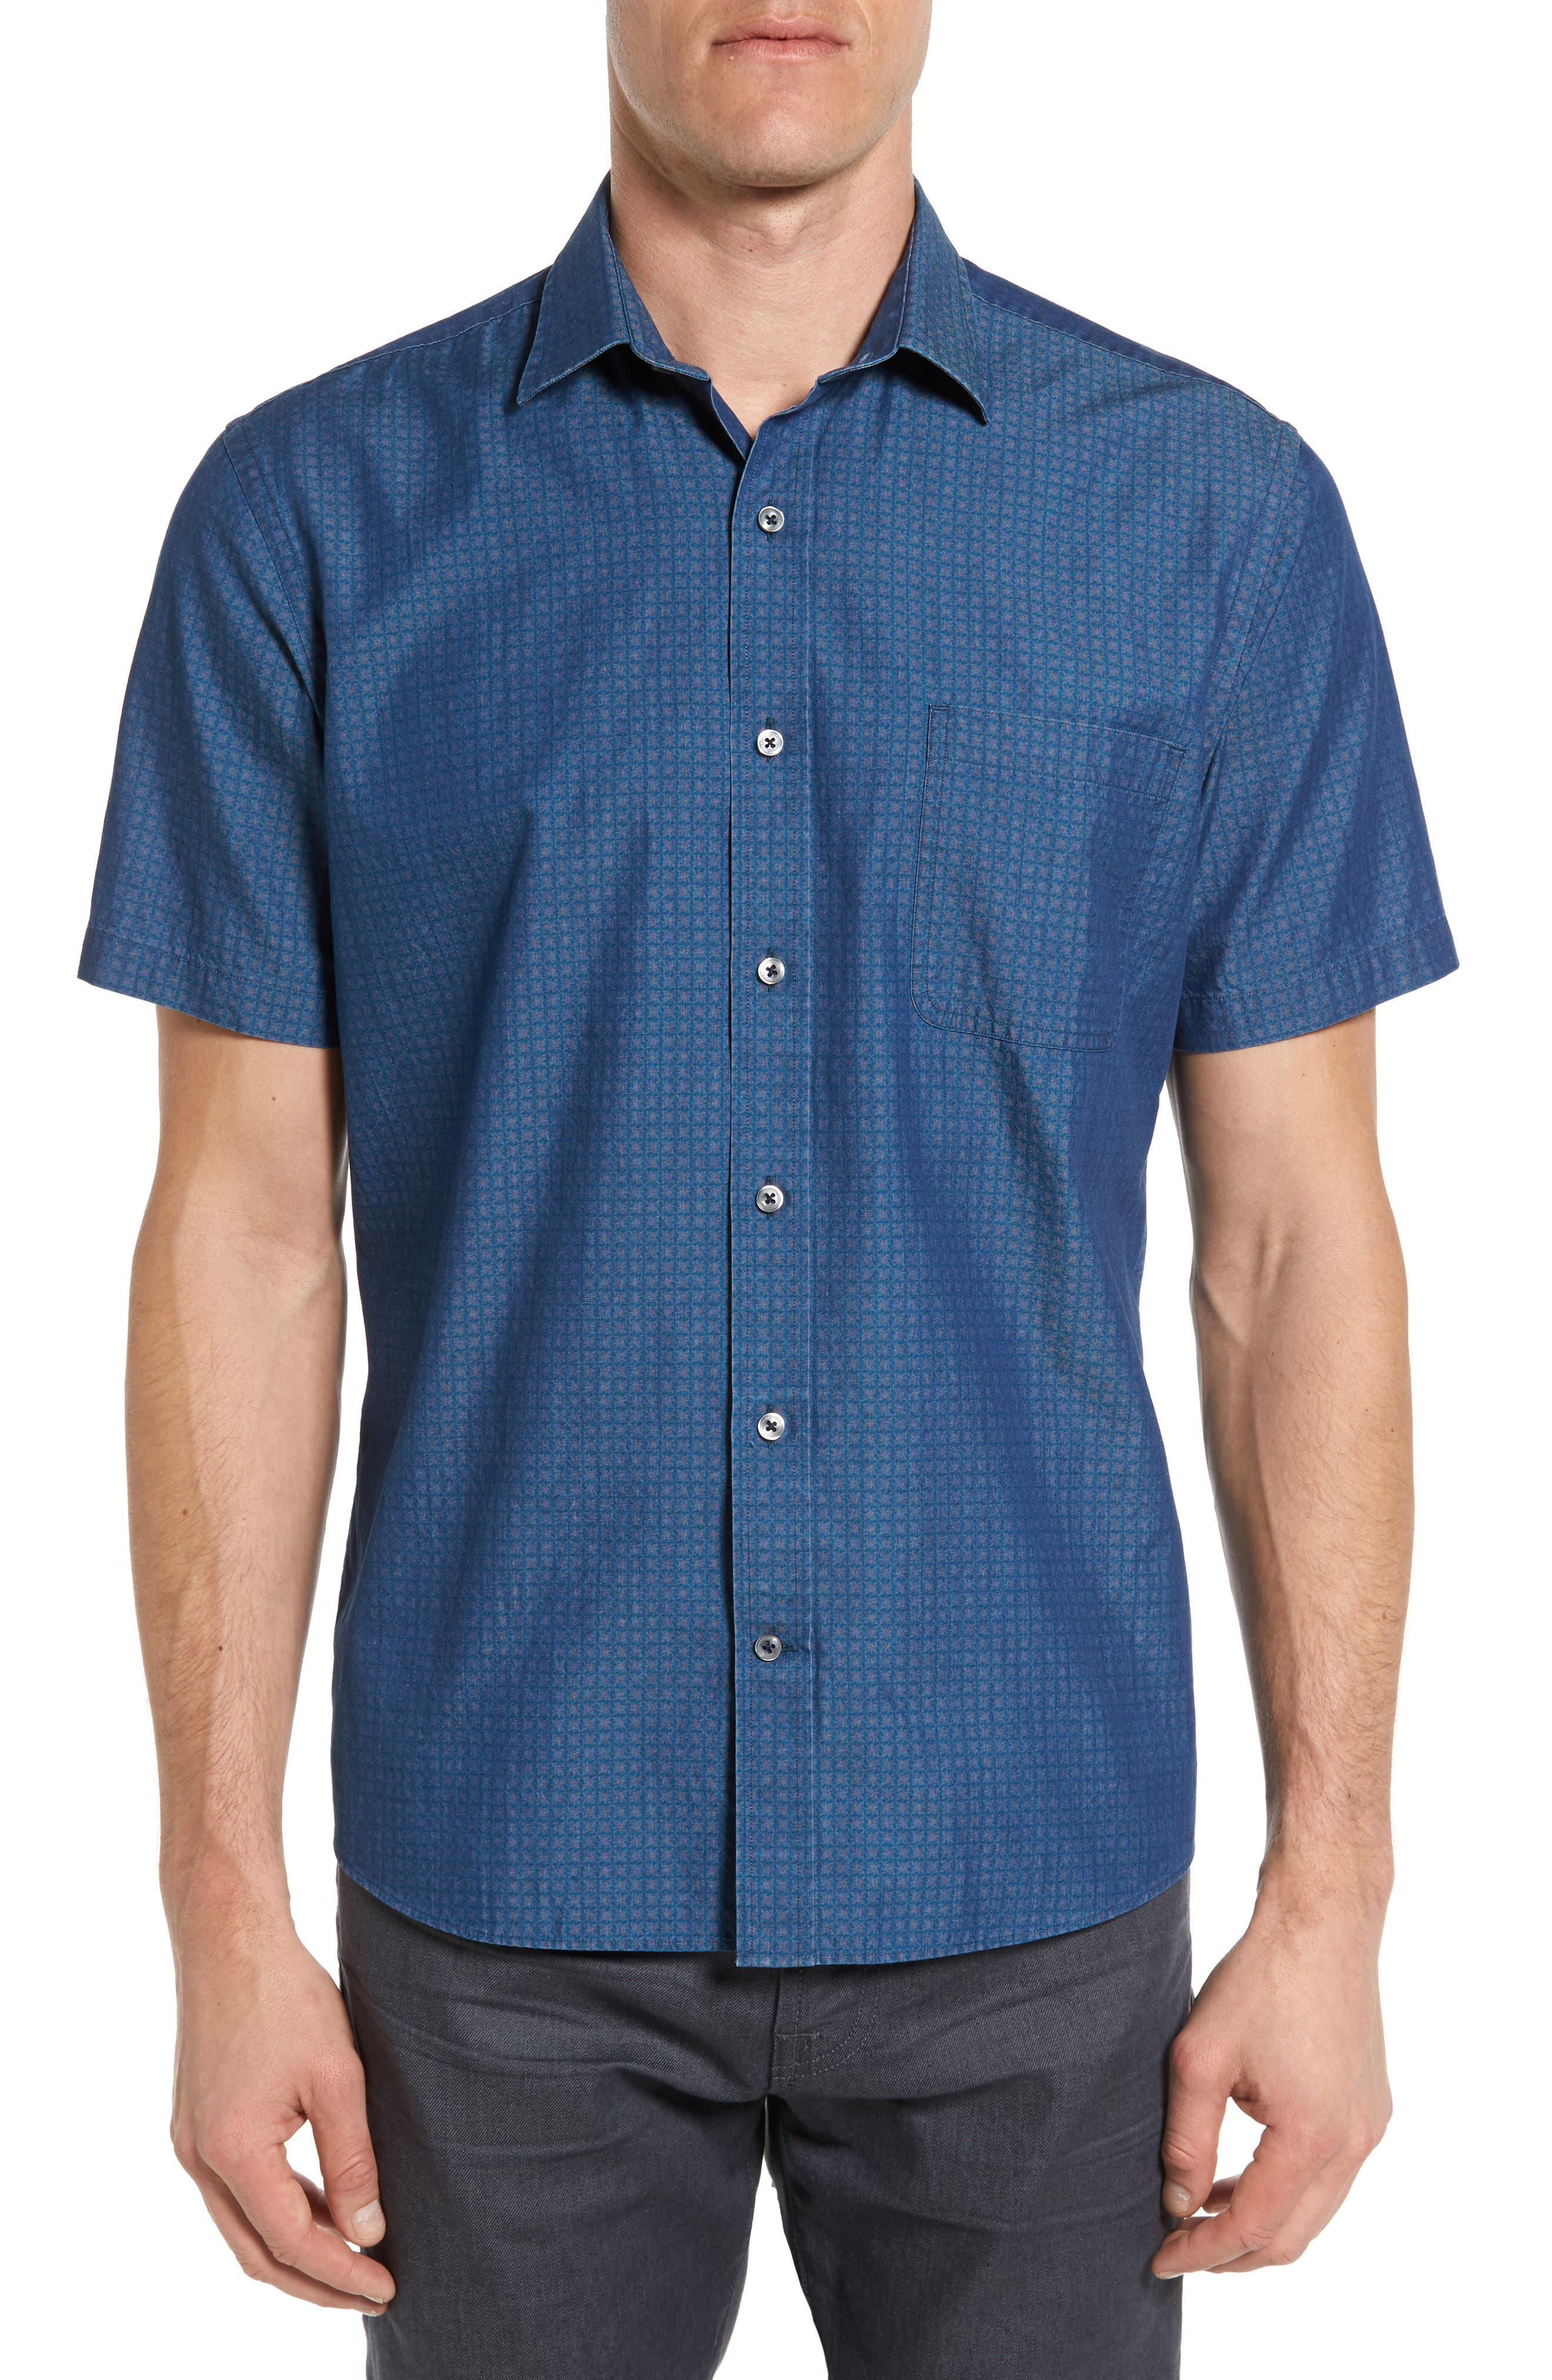 Maker & Company Tailored Fit Print Sport Shirt